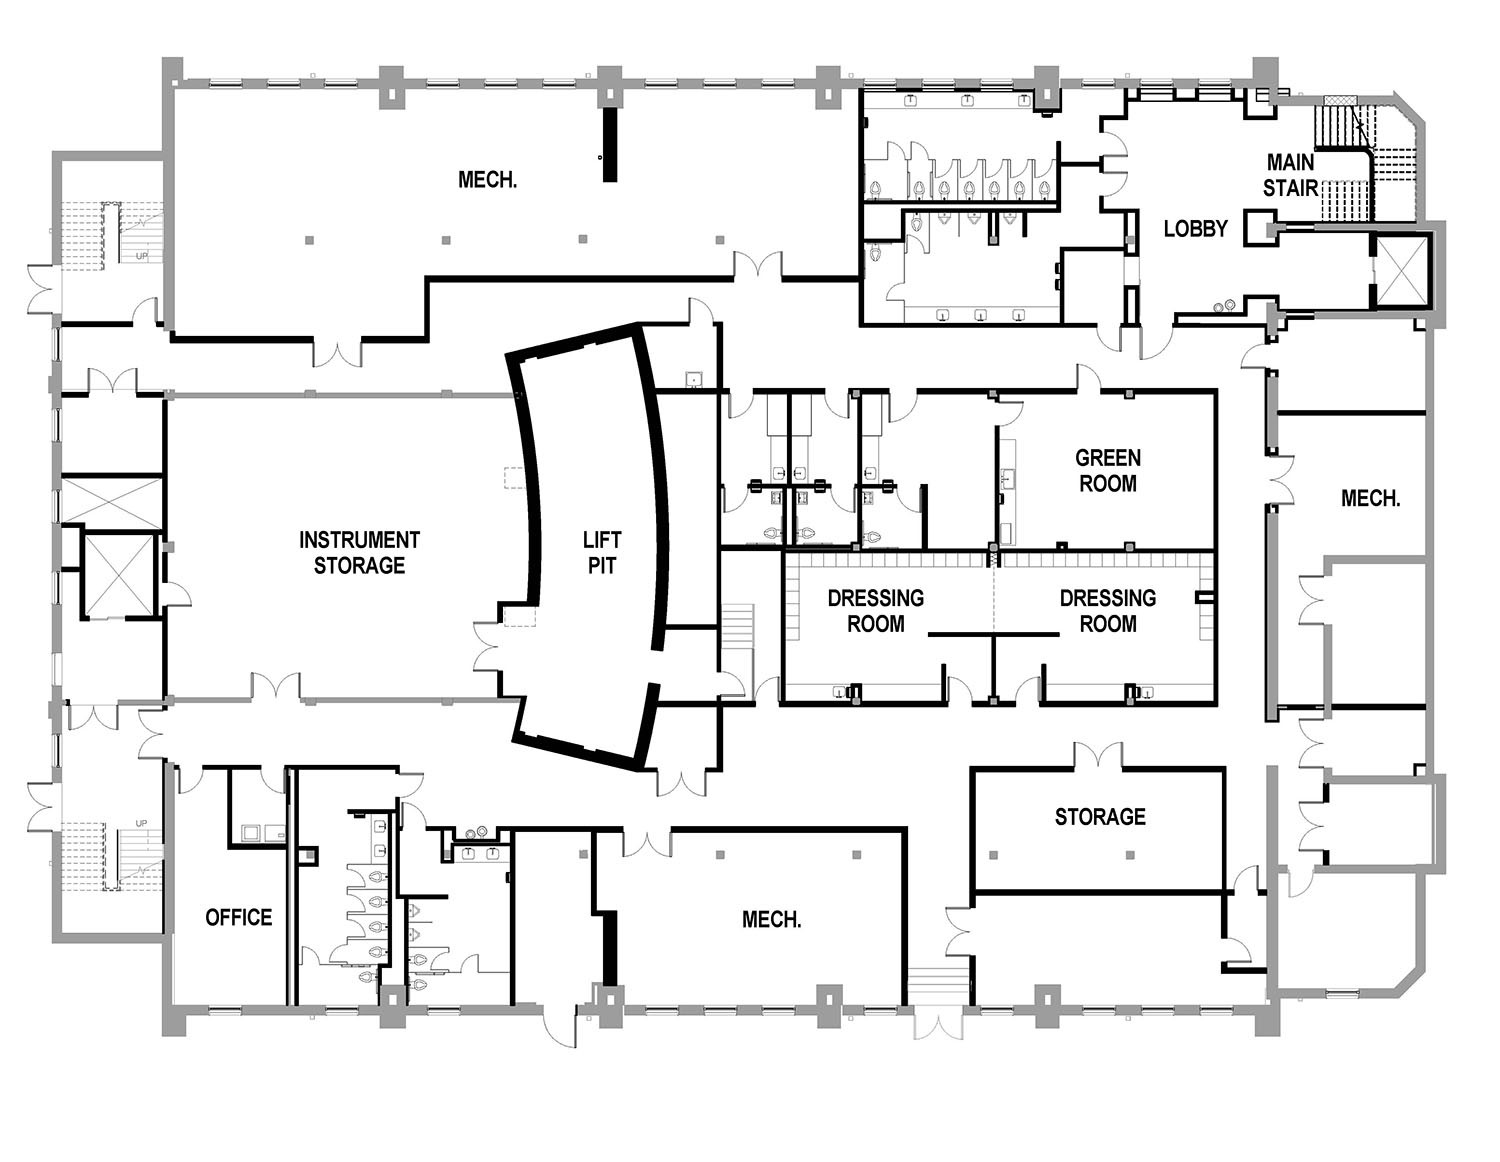 Electric Fence Wiring Schematic in addition Metal Siding Calculator additionally Audio Acoustic Treatment of Studios also Retaining Wall Detail Drawing also Jim And Joyce Faulkner Performing Arts Center. on acoustic wall panels for home